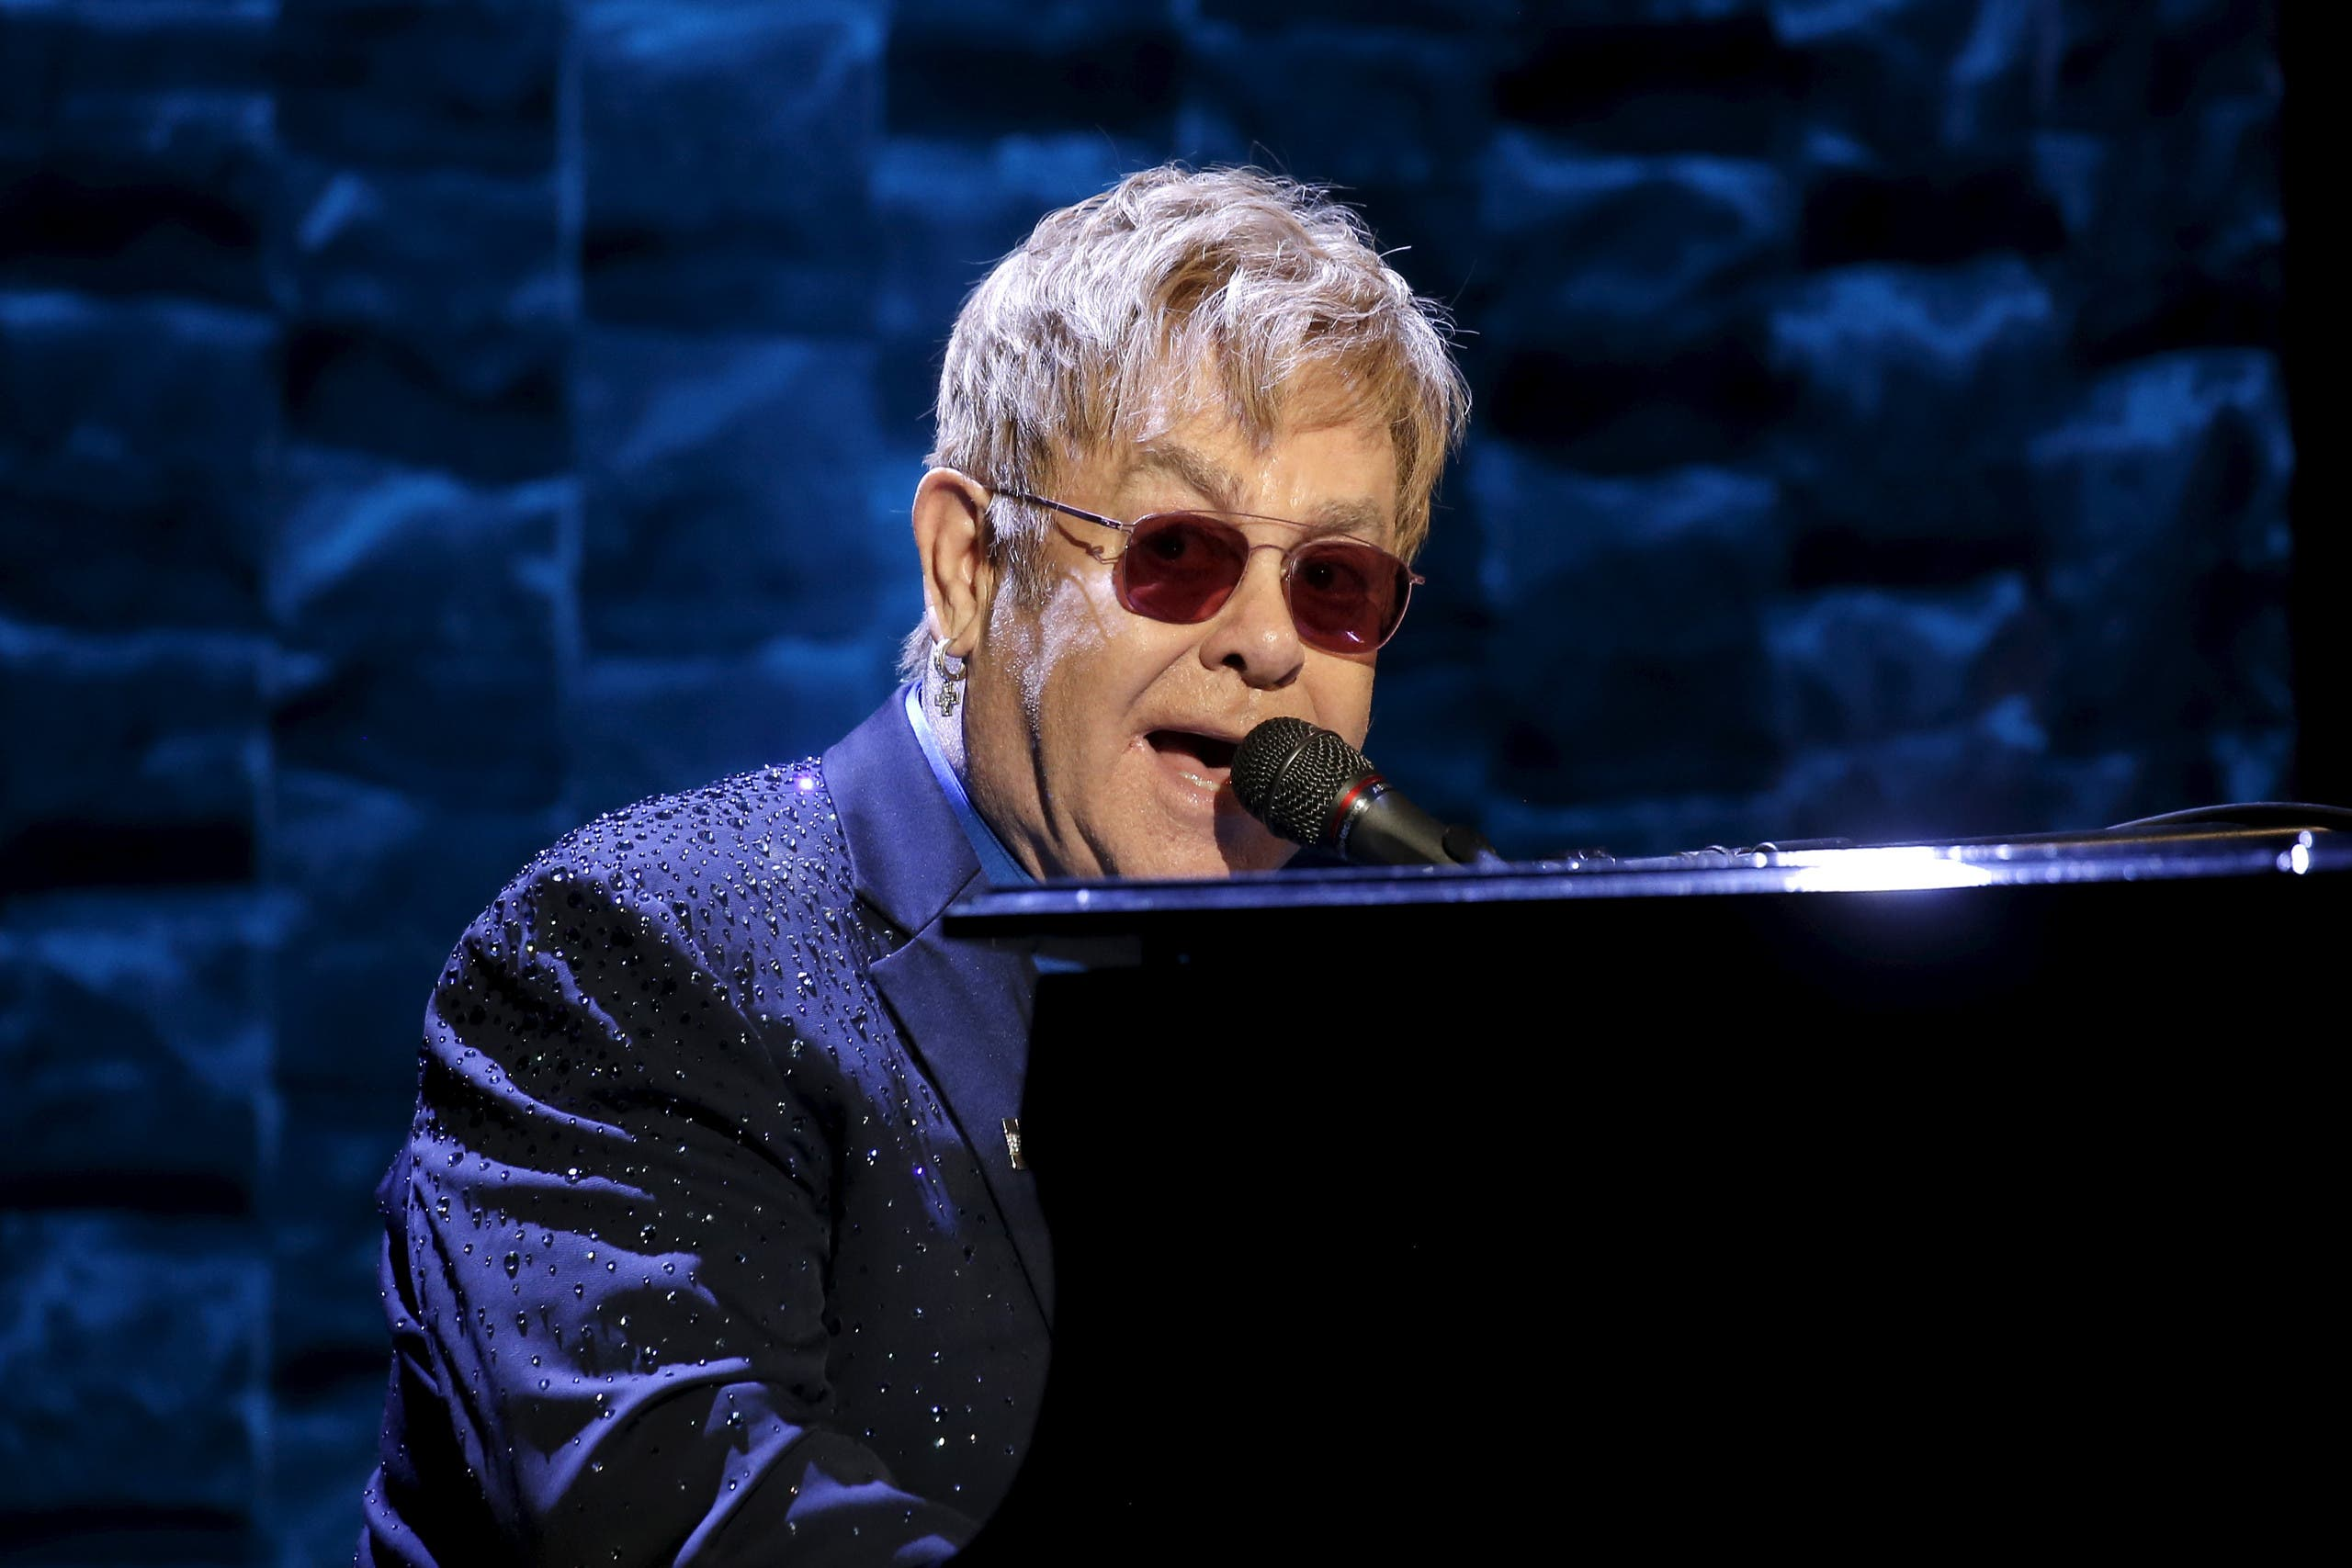 Singer Elton John performs at the Hillary Victory Fund at Radio City Music Hall in the Manhattan borough of New York City, March 2, 2016. (Reuters)